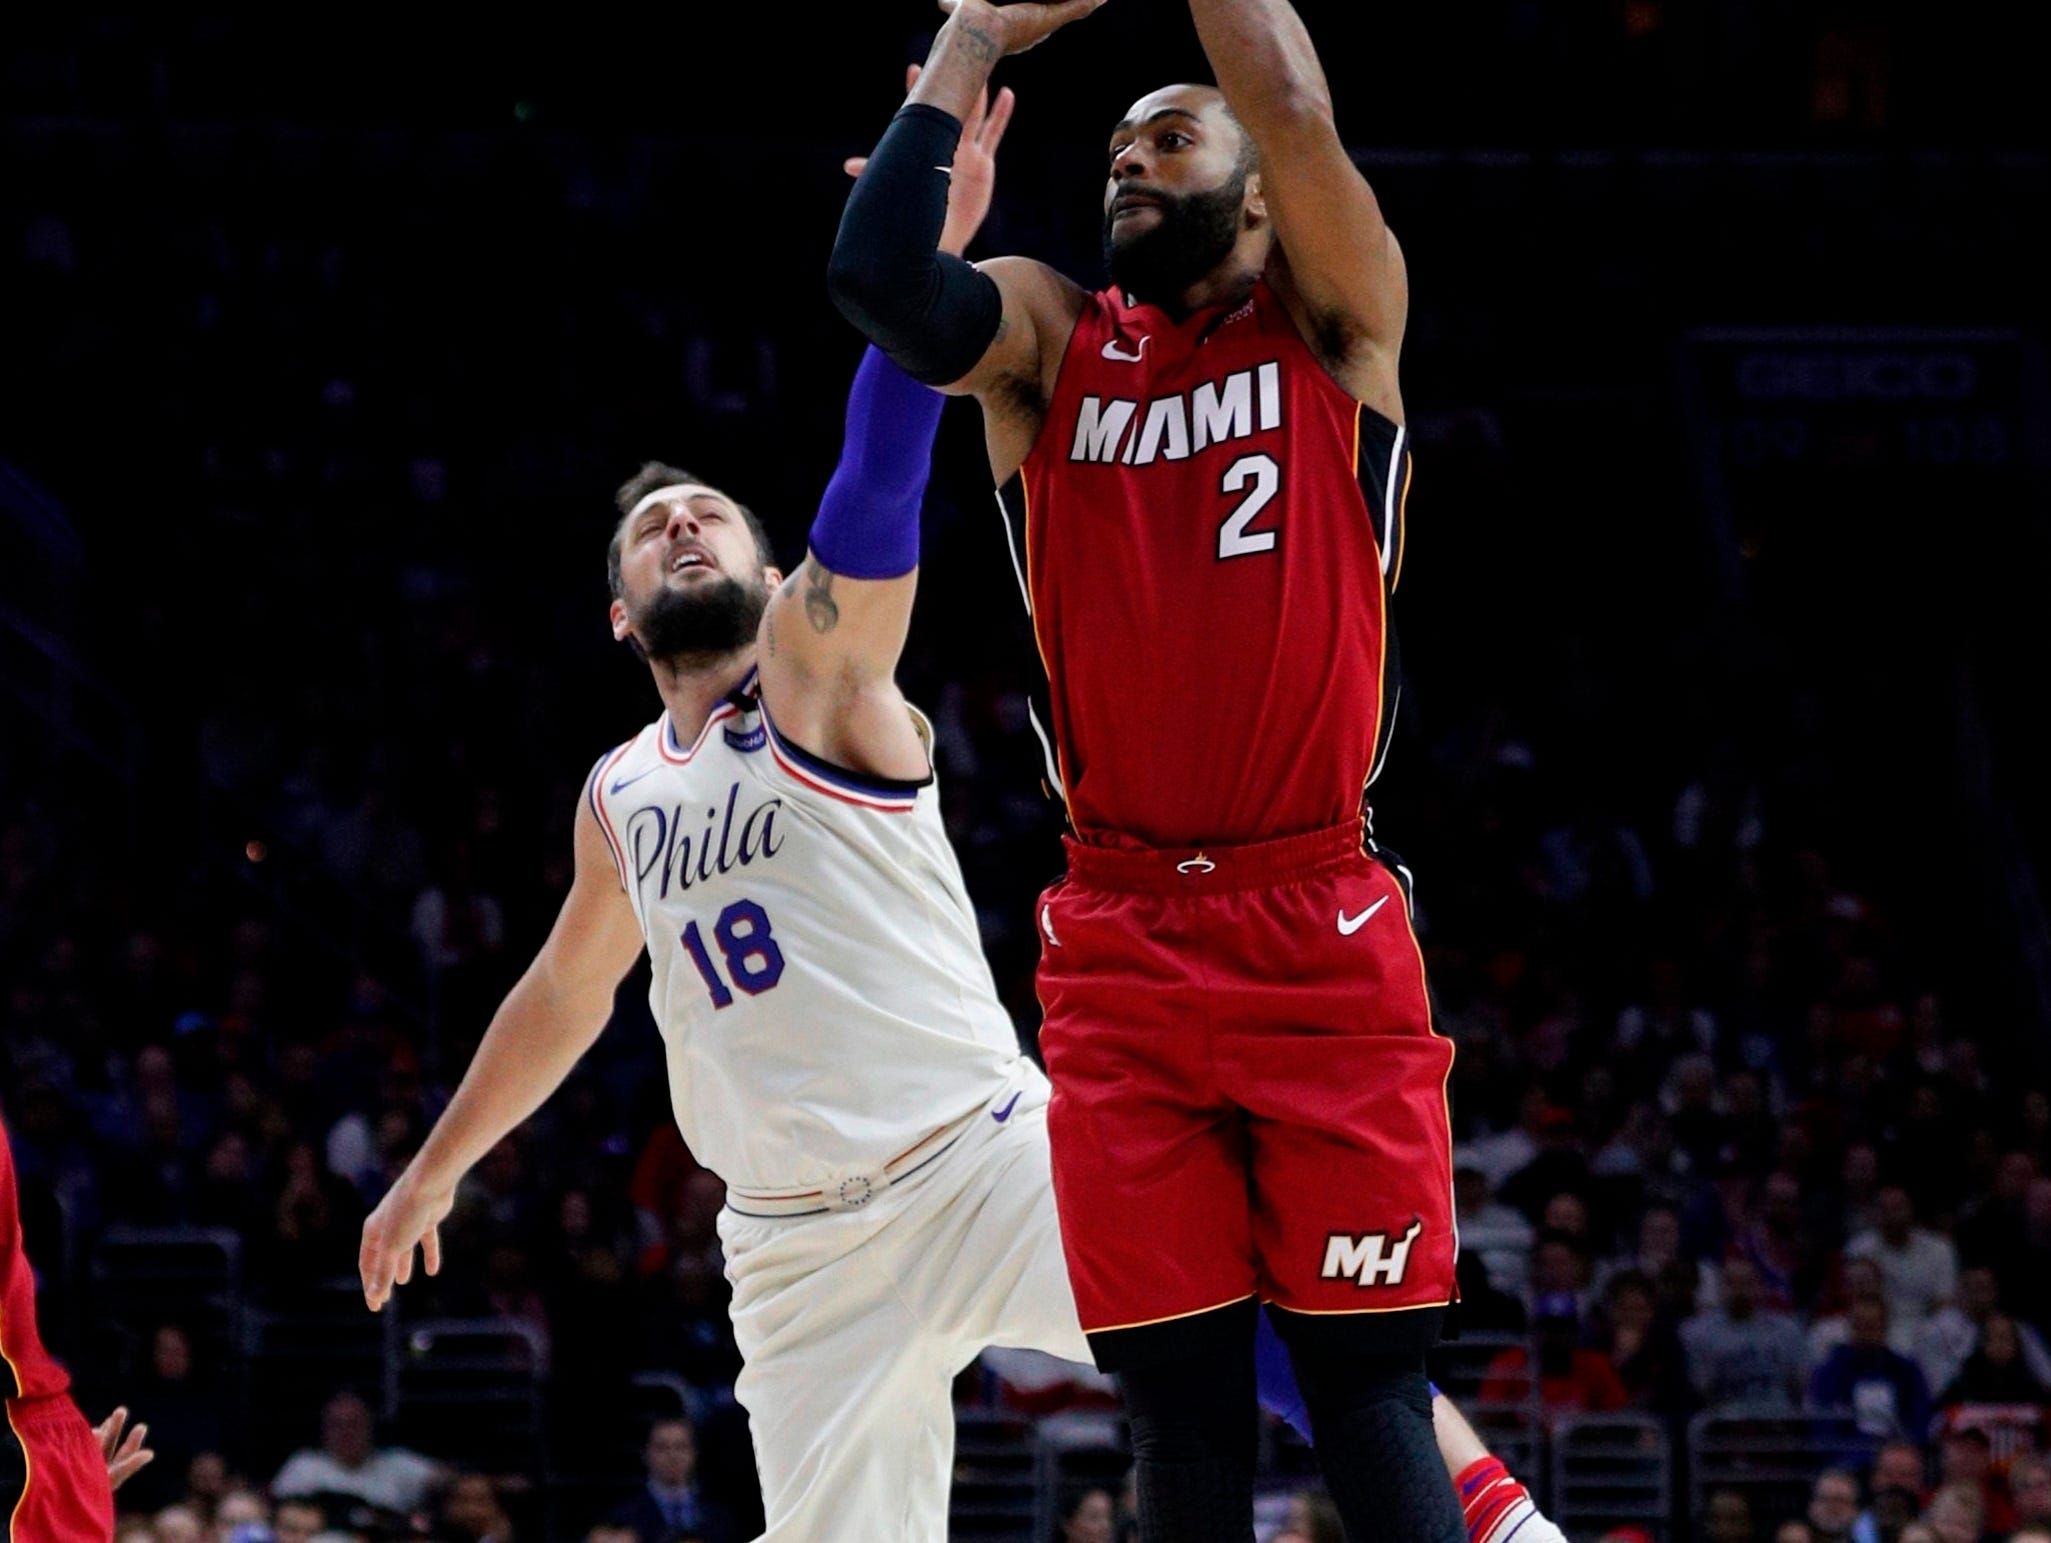 Miami Heat's Wayne Ellington shoots with Philadelphia 76ers' Marco Belinelli defending during the first half in Game 2 of a first-round NBA basketball playoff series, Monday, April 16, 2018, in Philadelphia.